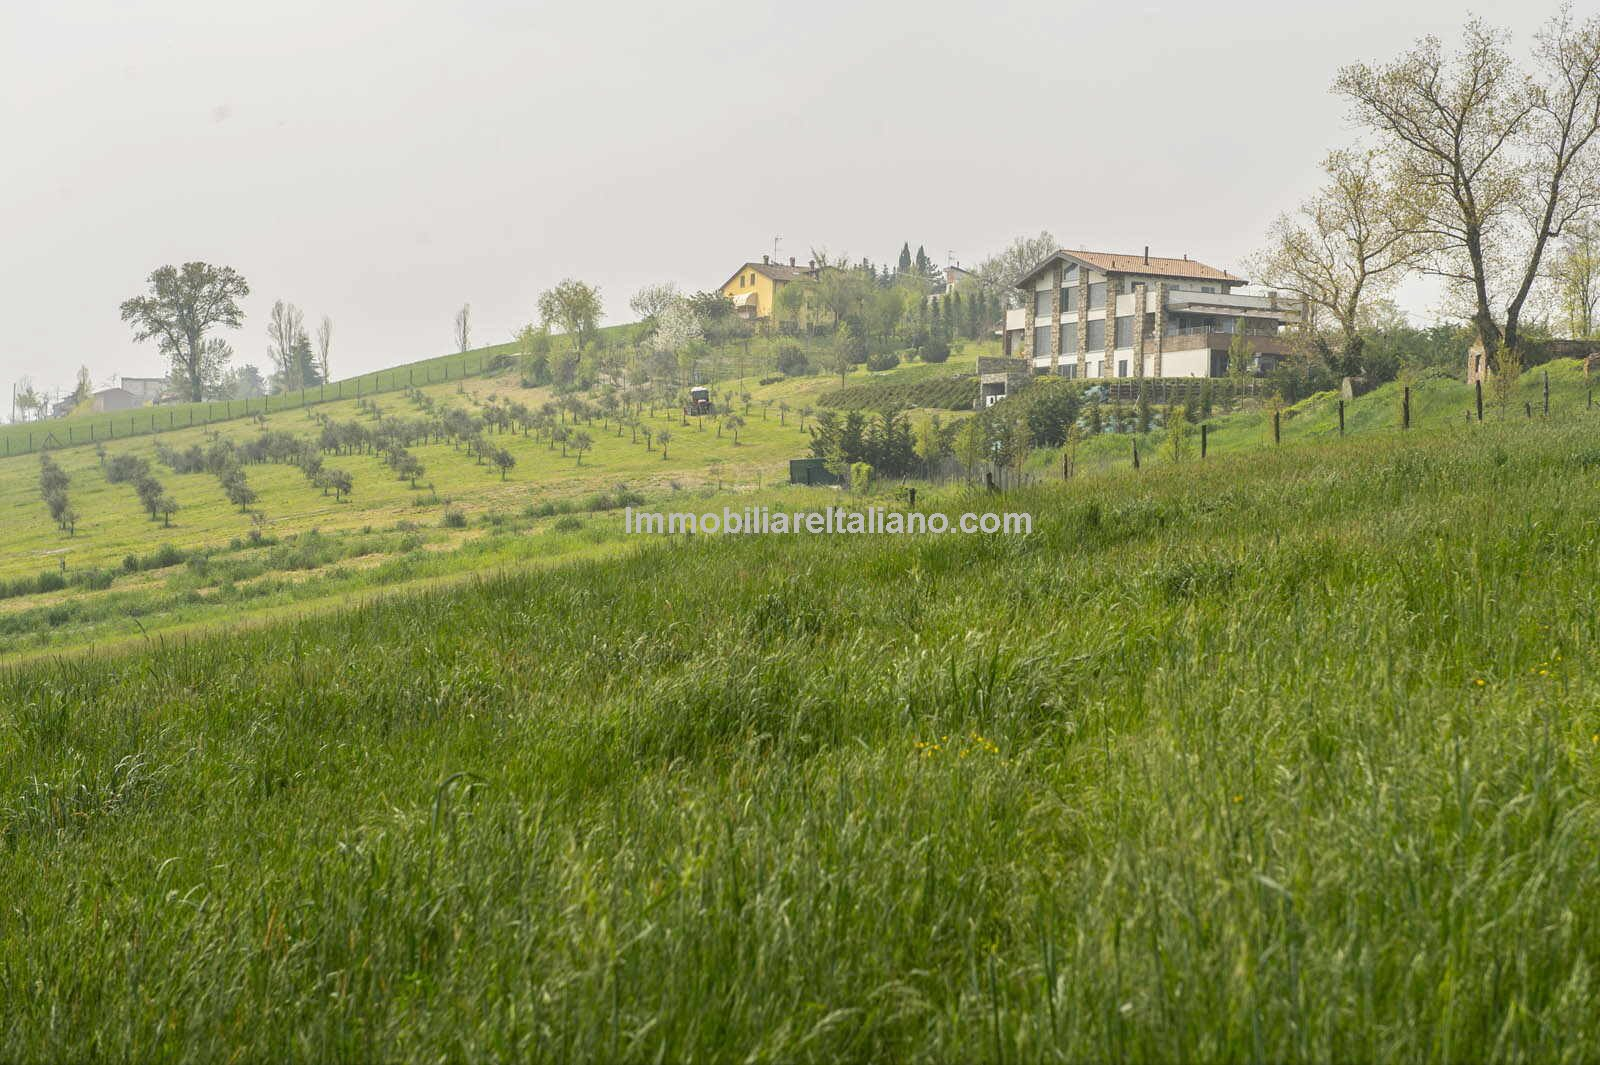 Emilia Romagna property for sale